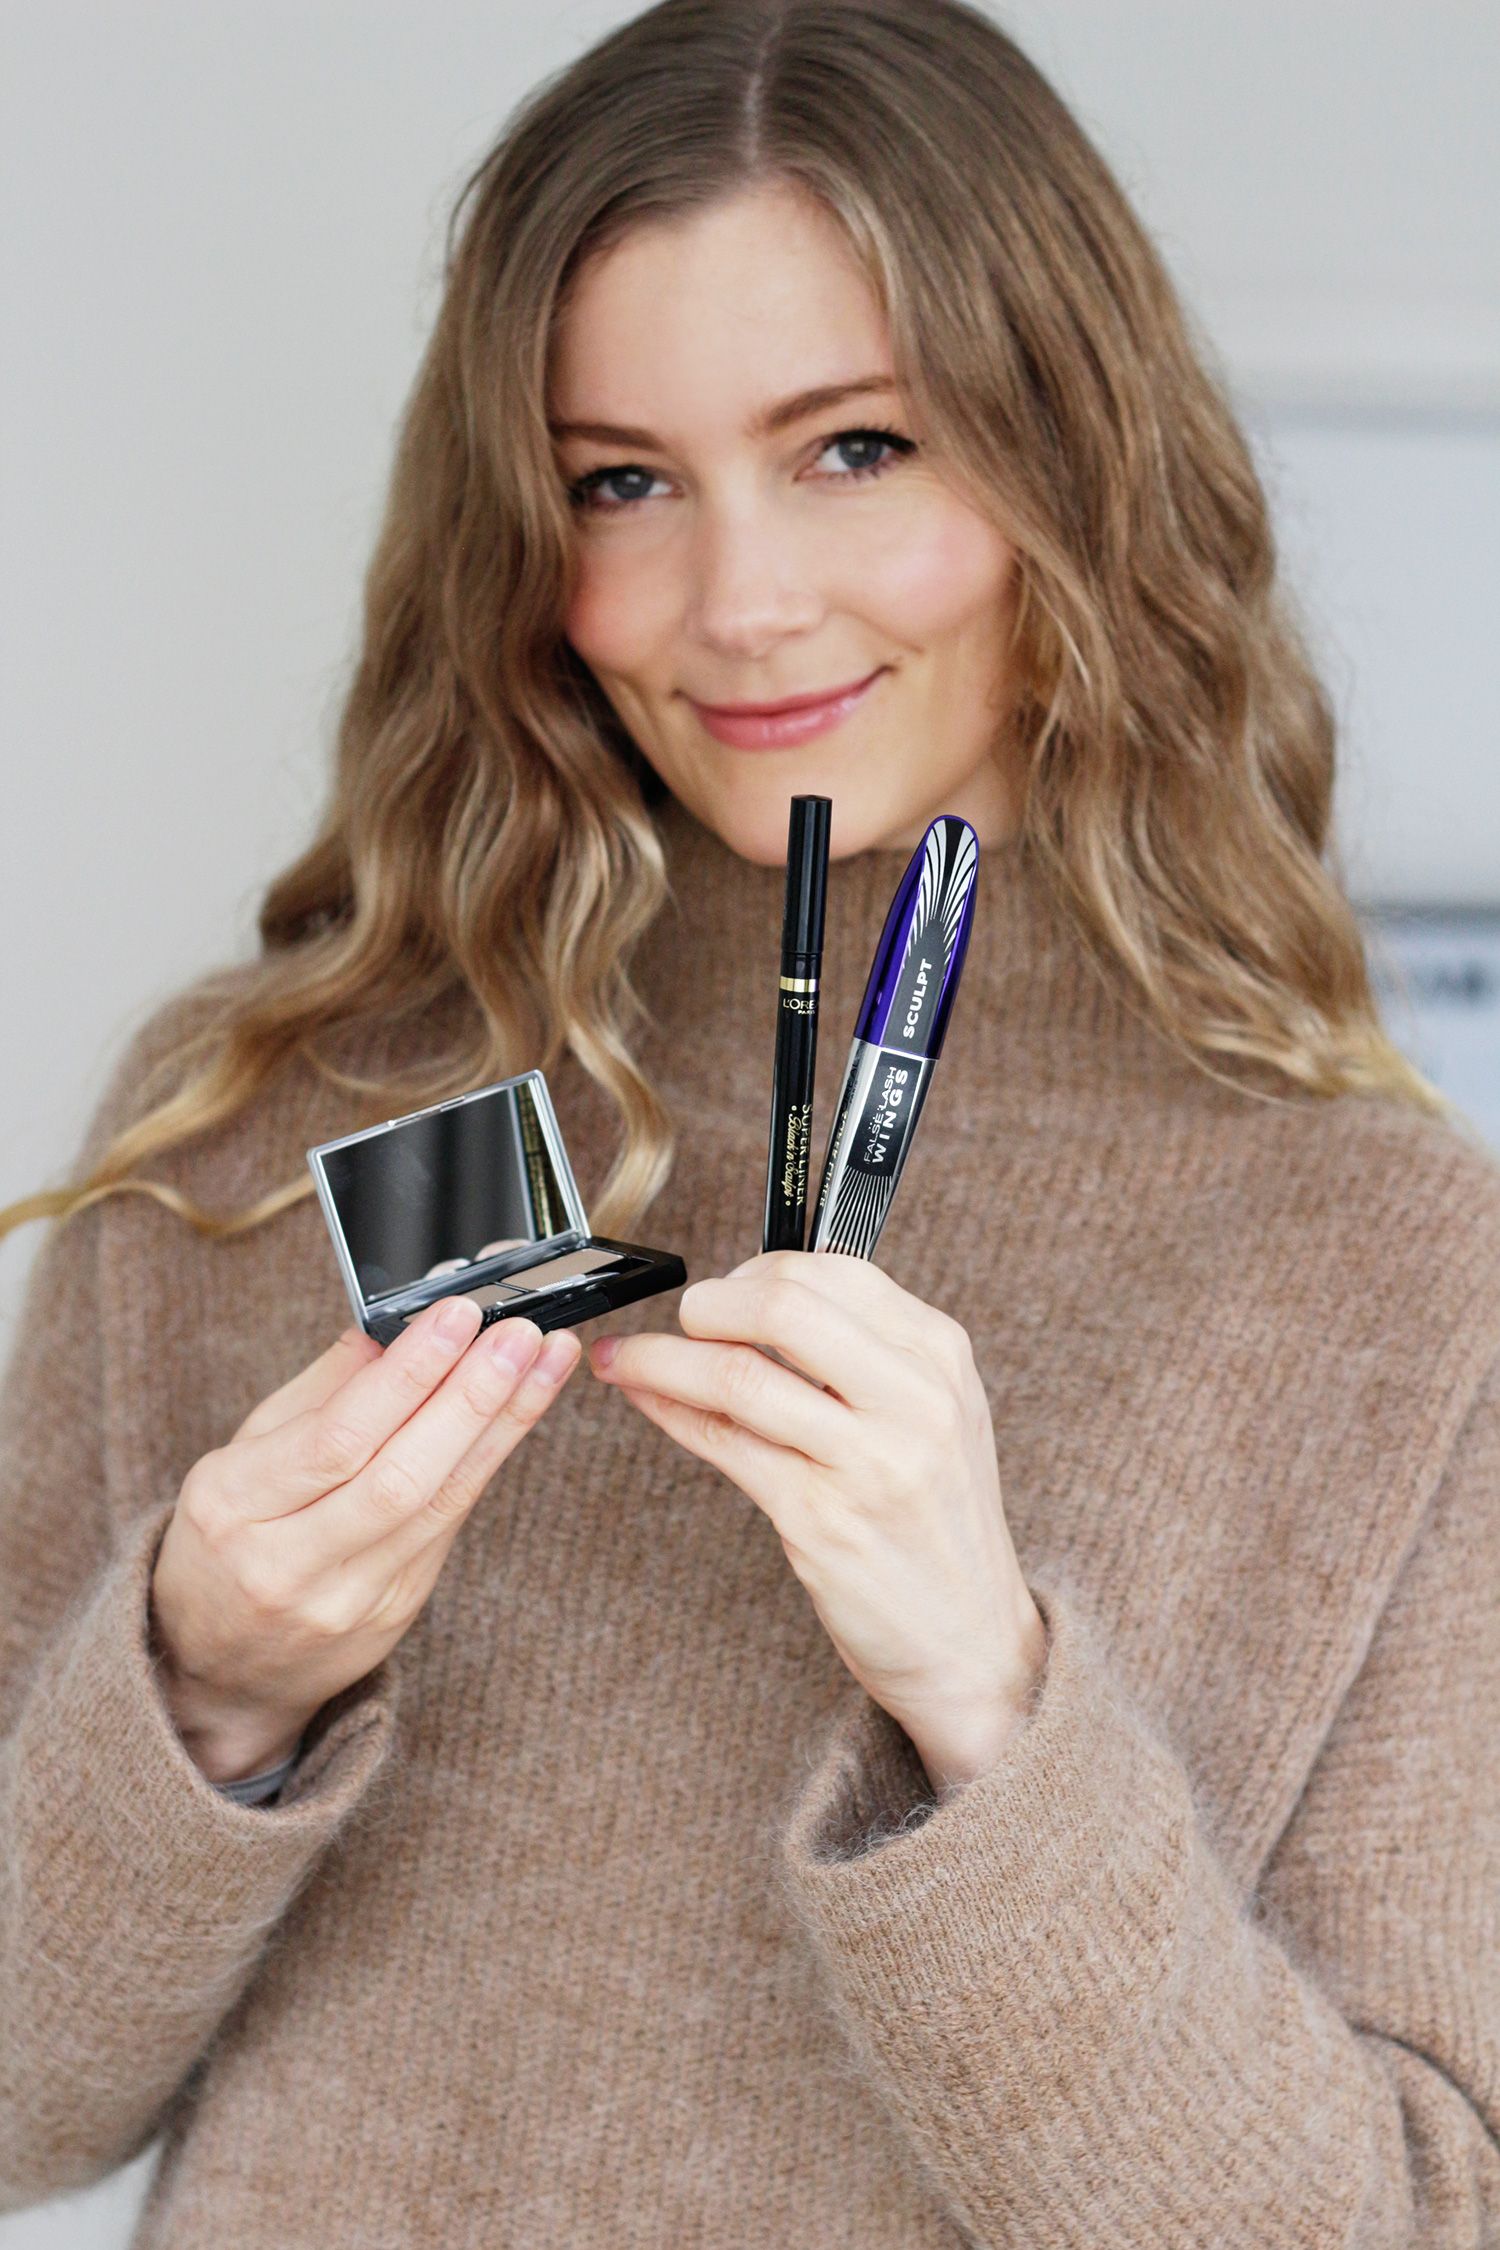 L'oréal-Paris-mascara